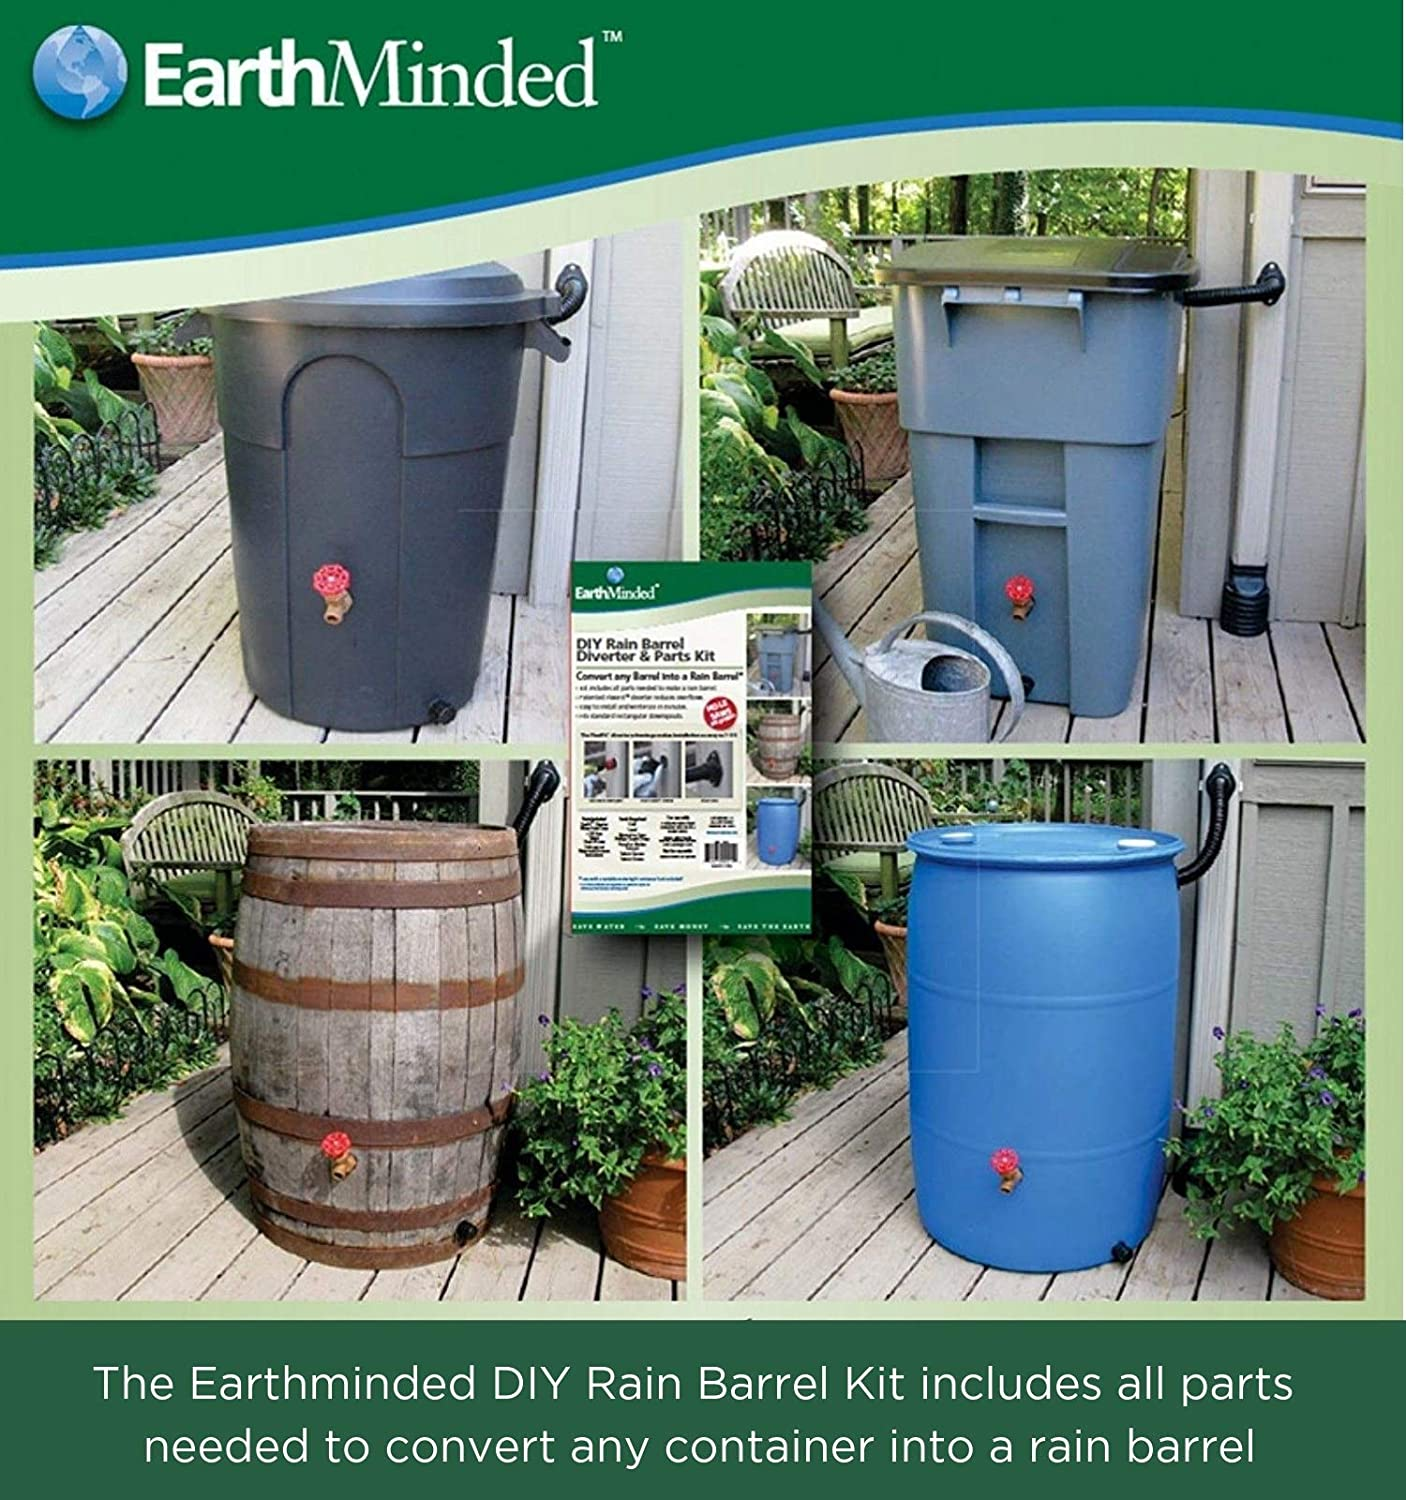 Earthminded Diy Rain Barrel Diverter And Parts Kit Water Collection System To Convert Containers Into Rain Barrels Catch Rain Water For Outdoor